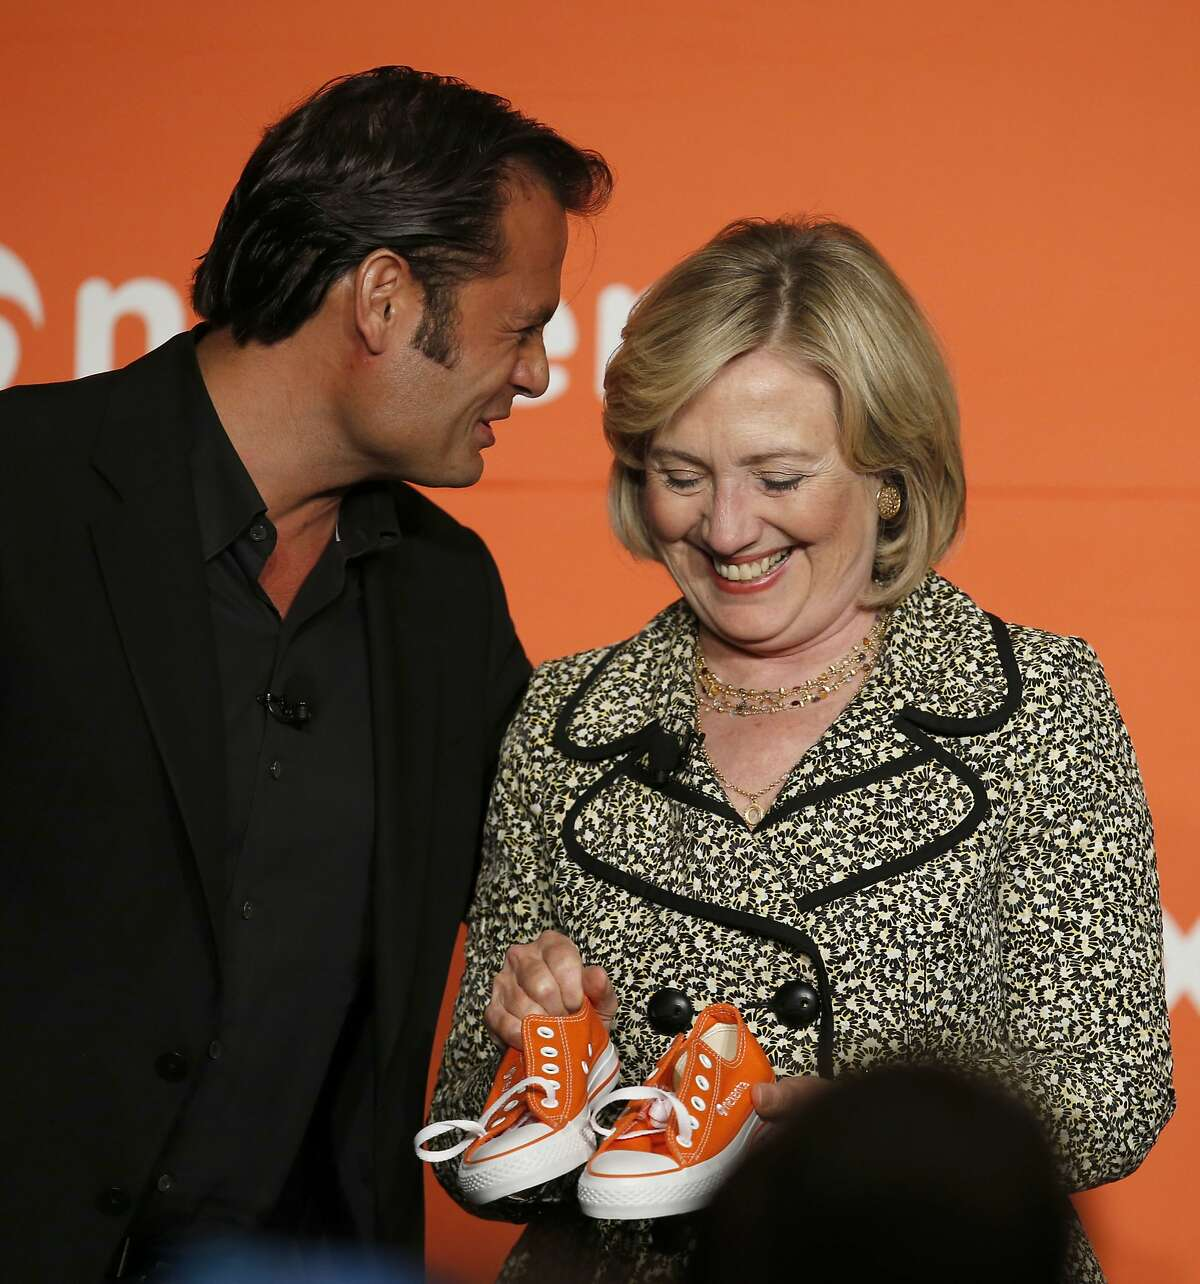 Tarkan Maner, CEO of Nexenta presented a pair of orange tennis shoes, in the color of his company, to former Secretary of State Hillary Rodham Clinton following a fireside chat during the Nexenta OpenSDx Summit at the St. Regis Hotel in San Francisco, Calif., on Thursday Aug. 28, 2014.